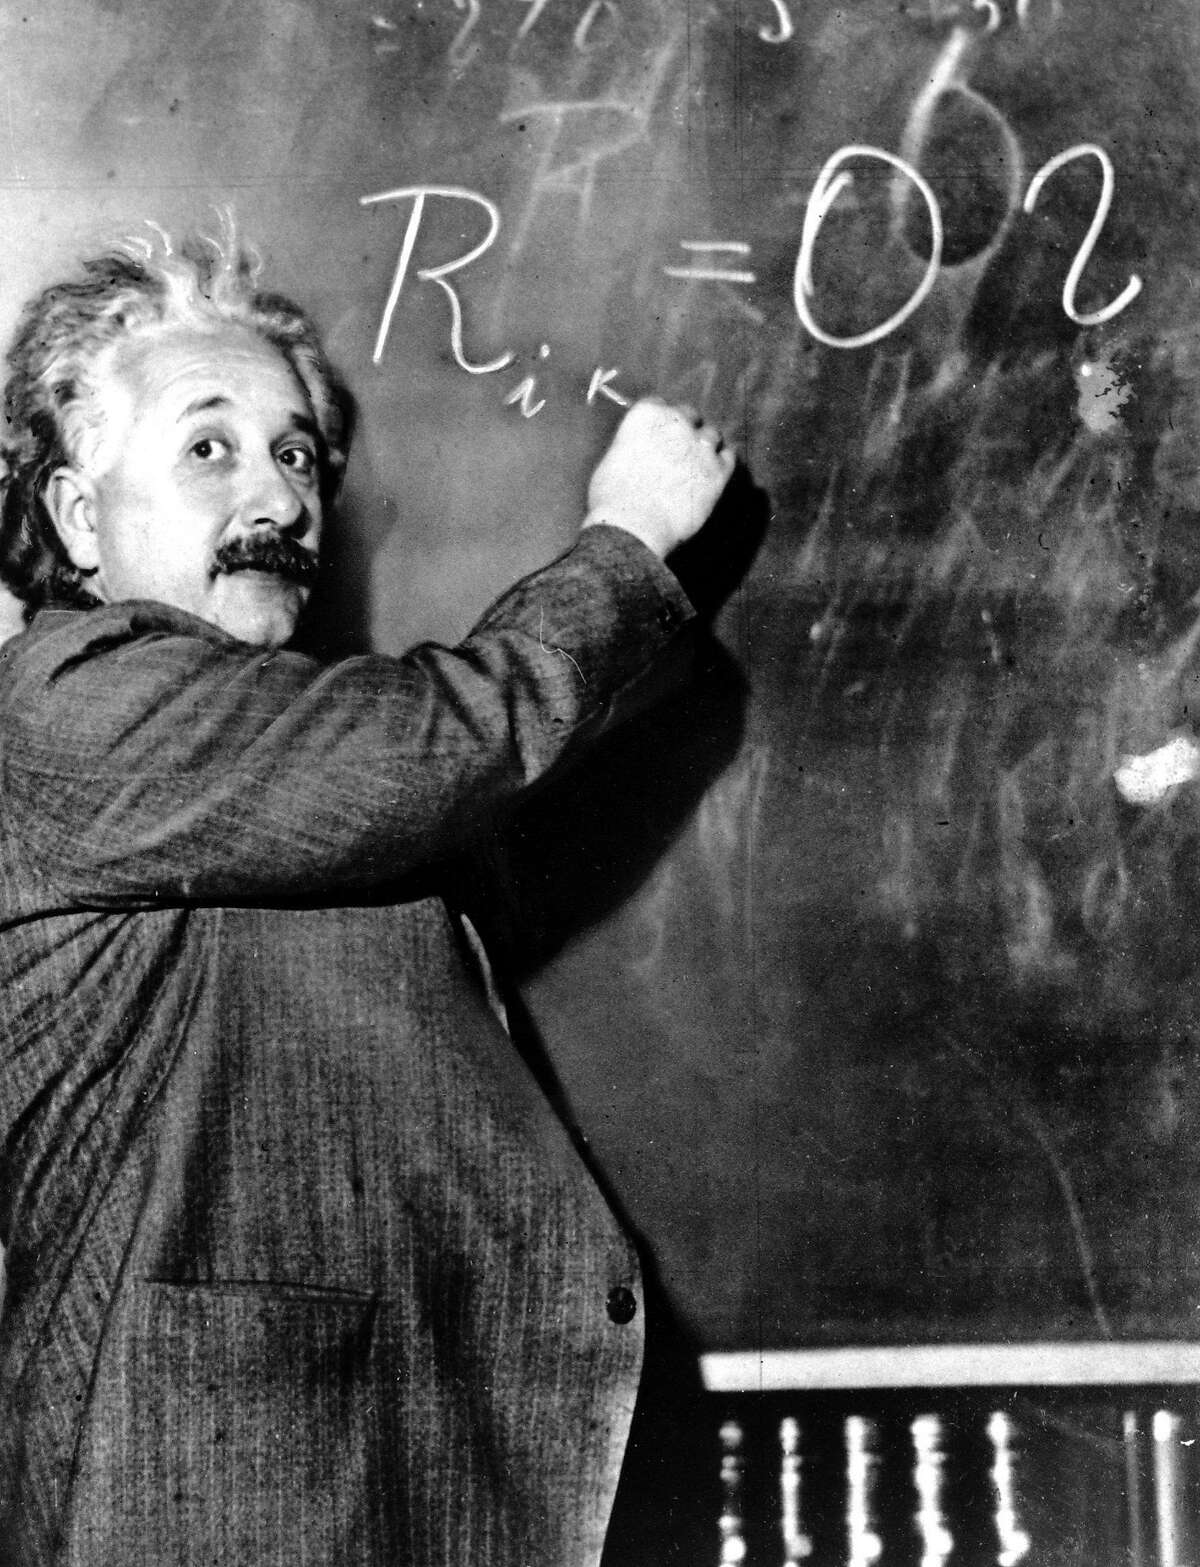 ** ADVANCE FOR SUNDAY, APRIL 17 **FILE**Dr. Albert Einstein writes an equation for the density of the Milky Way on the blackboard at the Carnegie Institute, Mt. Wilson Observatory headquarters in Pasadena, Calif., in this Jan. 14, 1931 file photo. Einstein achieved world reknown in 1905, at age 26, when he expounded a theory of general relativity which proposed the existence of atomic energy. Though his concepts ushered in the atomic age, he was a pacifist who warned against the arms race. He was awarded the Nobel Prize for Physics in 1921. (AP Photo) Ran on: 04-17-2005 Albert Einstein plays his violin at his study in Princeton, above left; writes an equation in Pasadena relating to the density of the universe, center; and begins an Adirondacks vacation by sailing Saranac Lake. Ran on: 07-14-2011 Photo caption Dummy text goes here. Dummy text goes here. Dummy text goes here. Dummy text goes here. Dummy text goes here. Dummy text goes here. Dummy text goes here. Dummy text goes here.###Photo: letters14_UC_PH1926115200AP###Live Caption:###Caption History:** ADVANCE FOR SUNDAY, APRIL 17 **FILE**Dr. Albert Einstein writes an equation for the density of the Milky Way on the blackboard at the Carnegie Institute, Mt. Wilson Observatory headquarters in Pasadena, Calif., in this Jan. 14, 1931 file photo. Einstein achieved world reknown in 1905, at age 26, when he expounded a theory of general relativity which proposed the existence of atomic energy. Though his concepts ushered in the atomic age, he was a pacifist who warned against the arms race. He was awarded the Nobel Prize for Physics in 1921. (AP Photo) Ran on: 04-17-2005 Albert Einstein plays his violin at his study in Princeton, above left;...